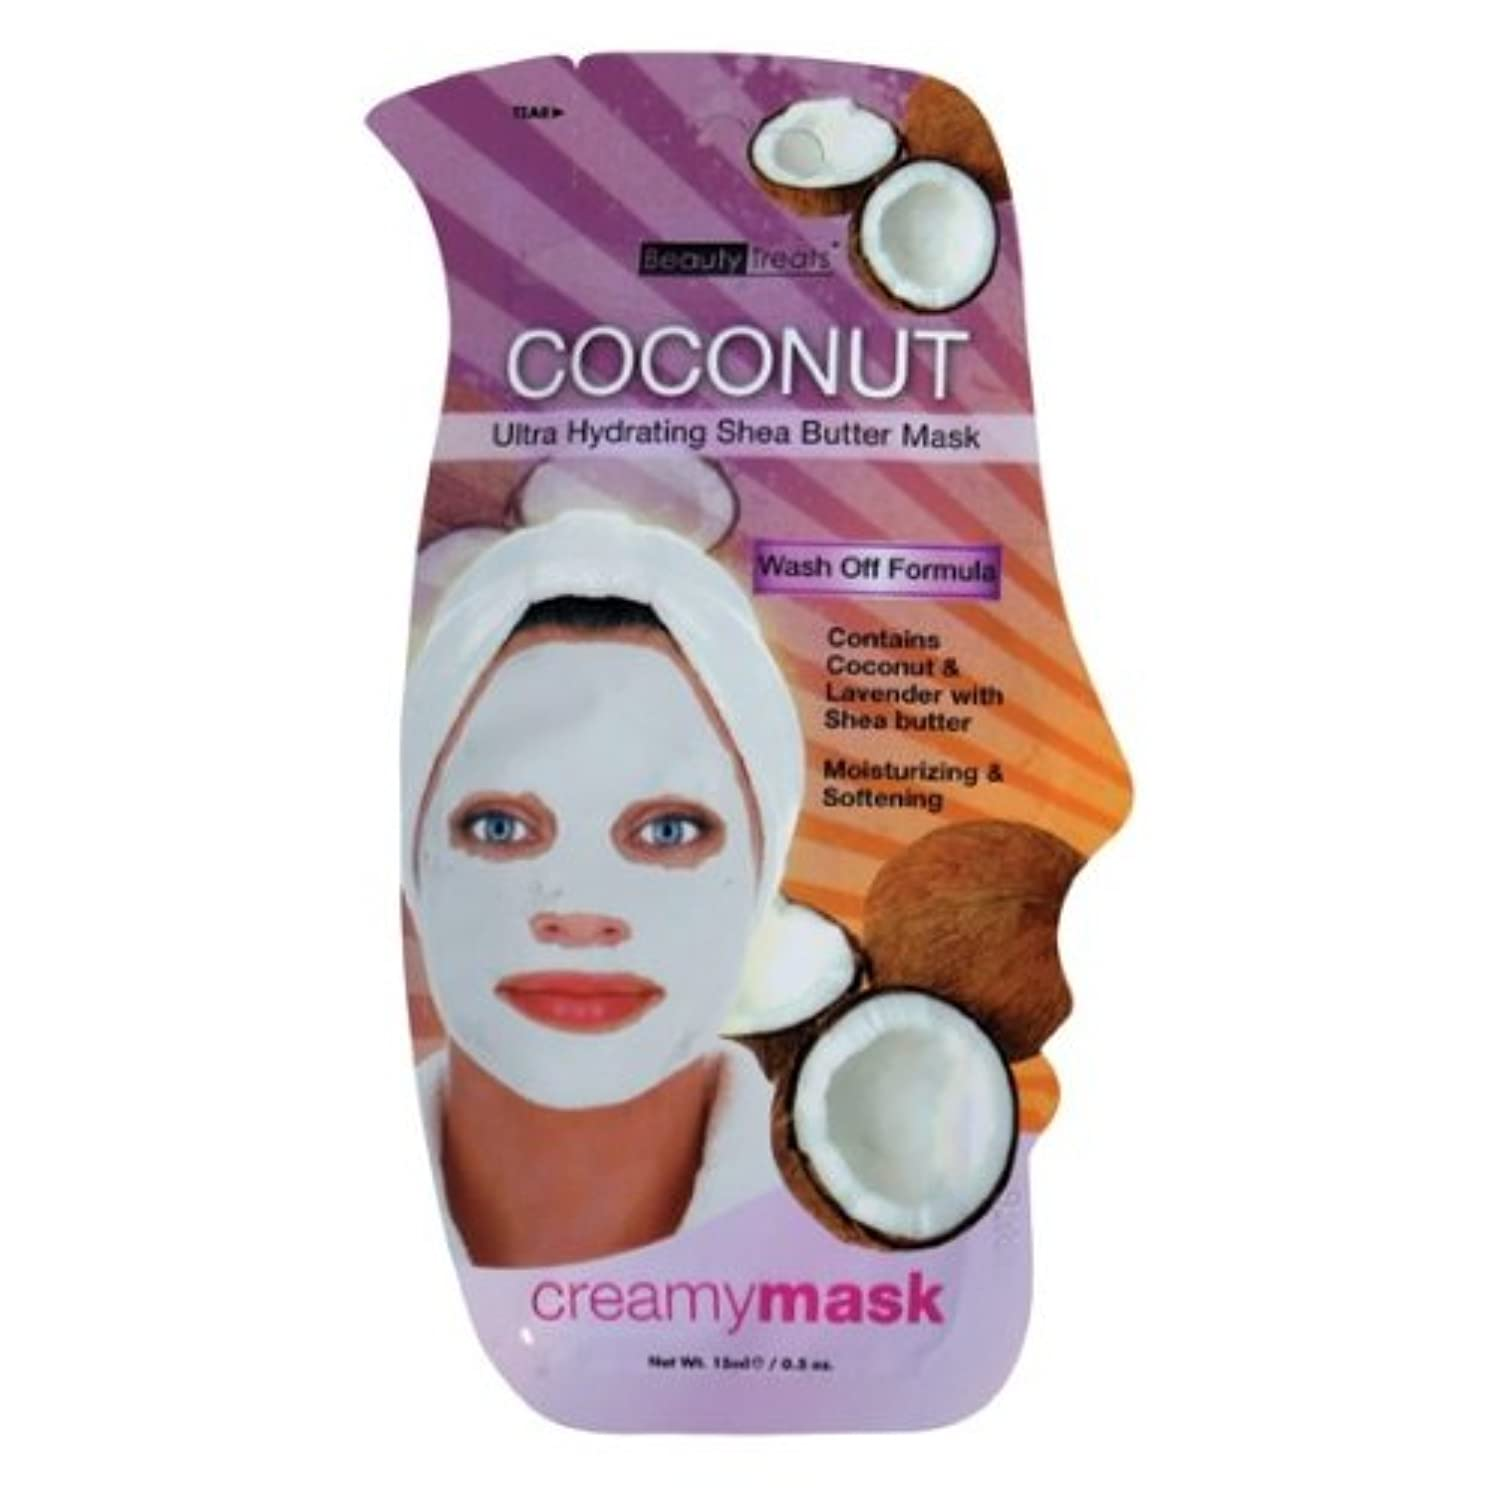 安らぎ宙返りシングル(3 Pack) BEAUTY TREATS Coconut Ultra Hydrating Shea Butter Mask - Coconut (並行輸入品)